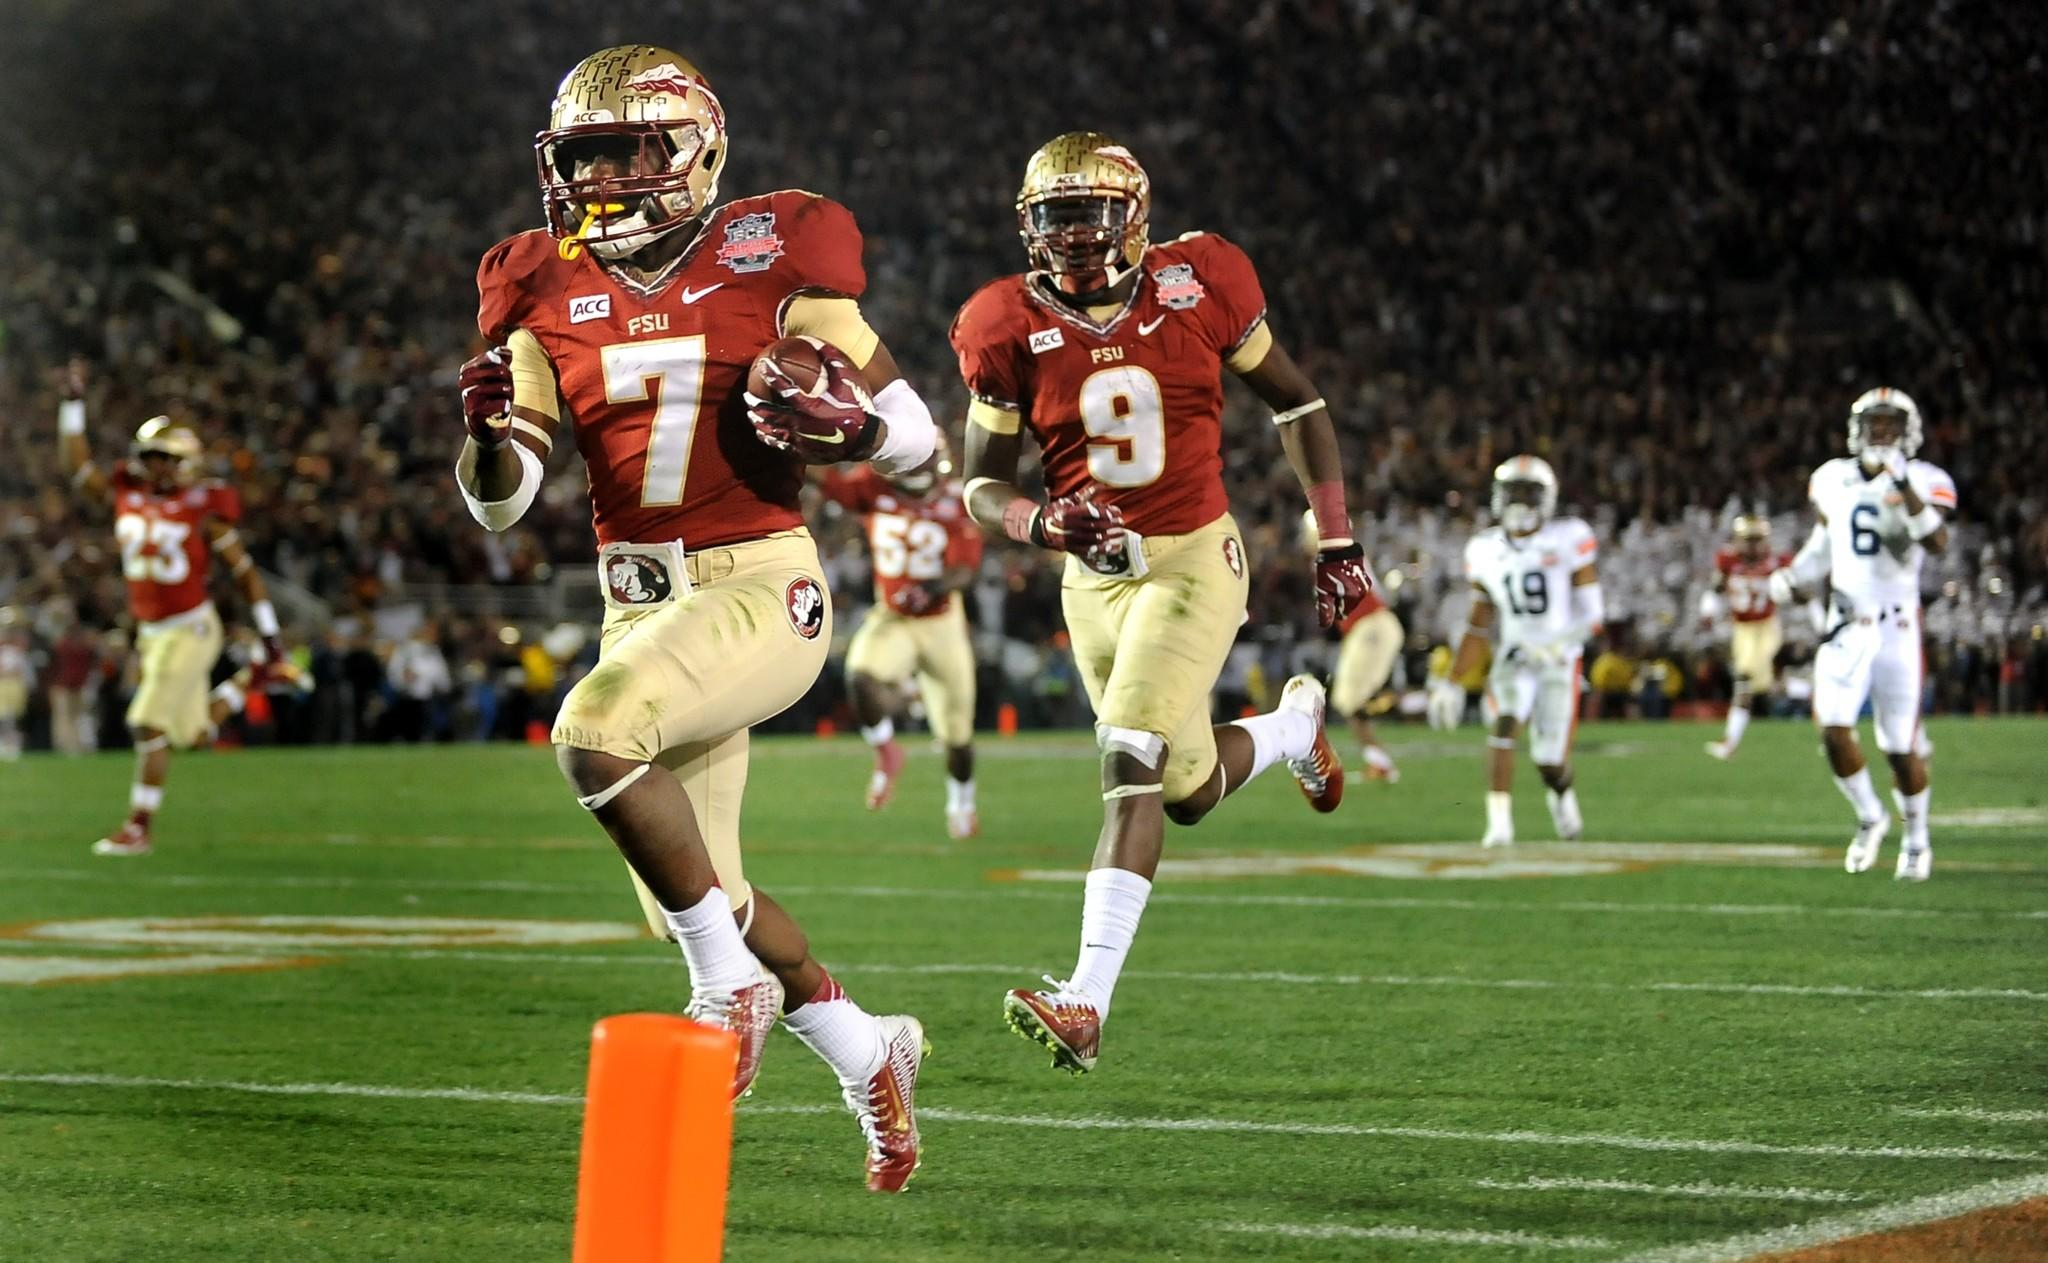 Florida State receiver Kermit Whitfield nears the goal line to complete a 100-yard kickoff return with 4:31 left in the fourth quarter to give the Seminoles a 27-24 lead in the BCS title game.